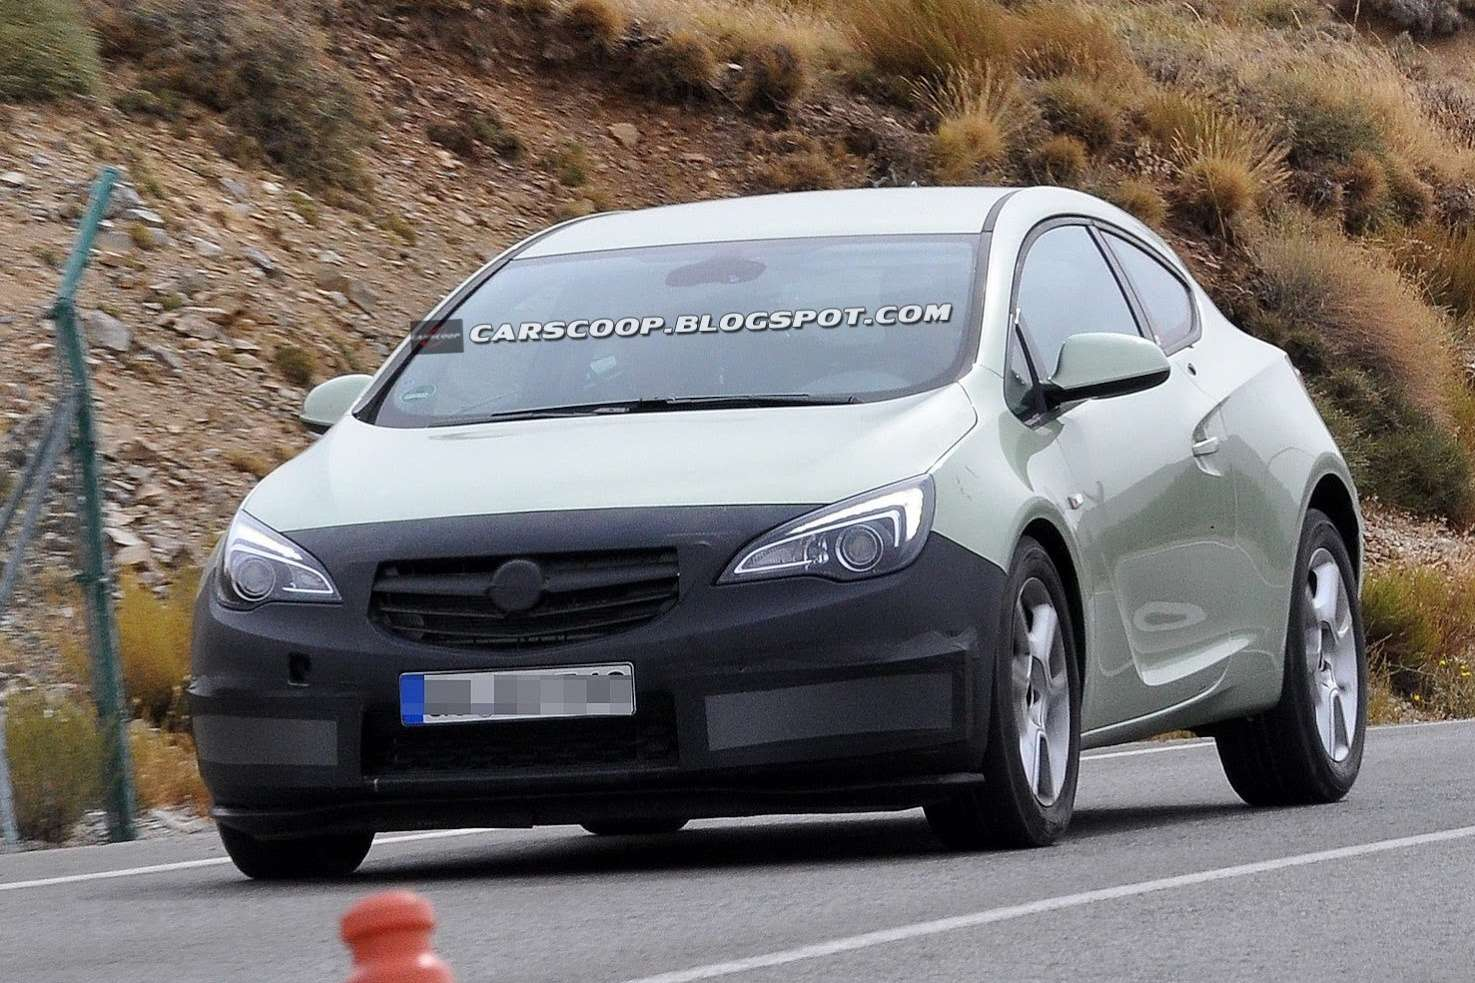 Facelifted Opel Astra GTC test prototype side-front view_no_copyright